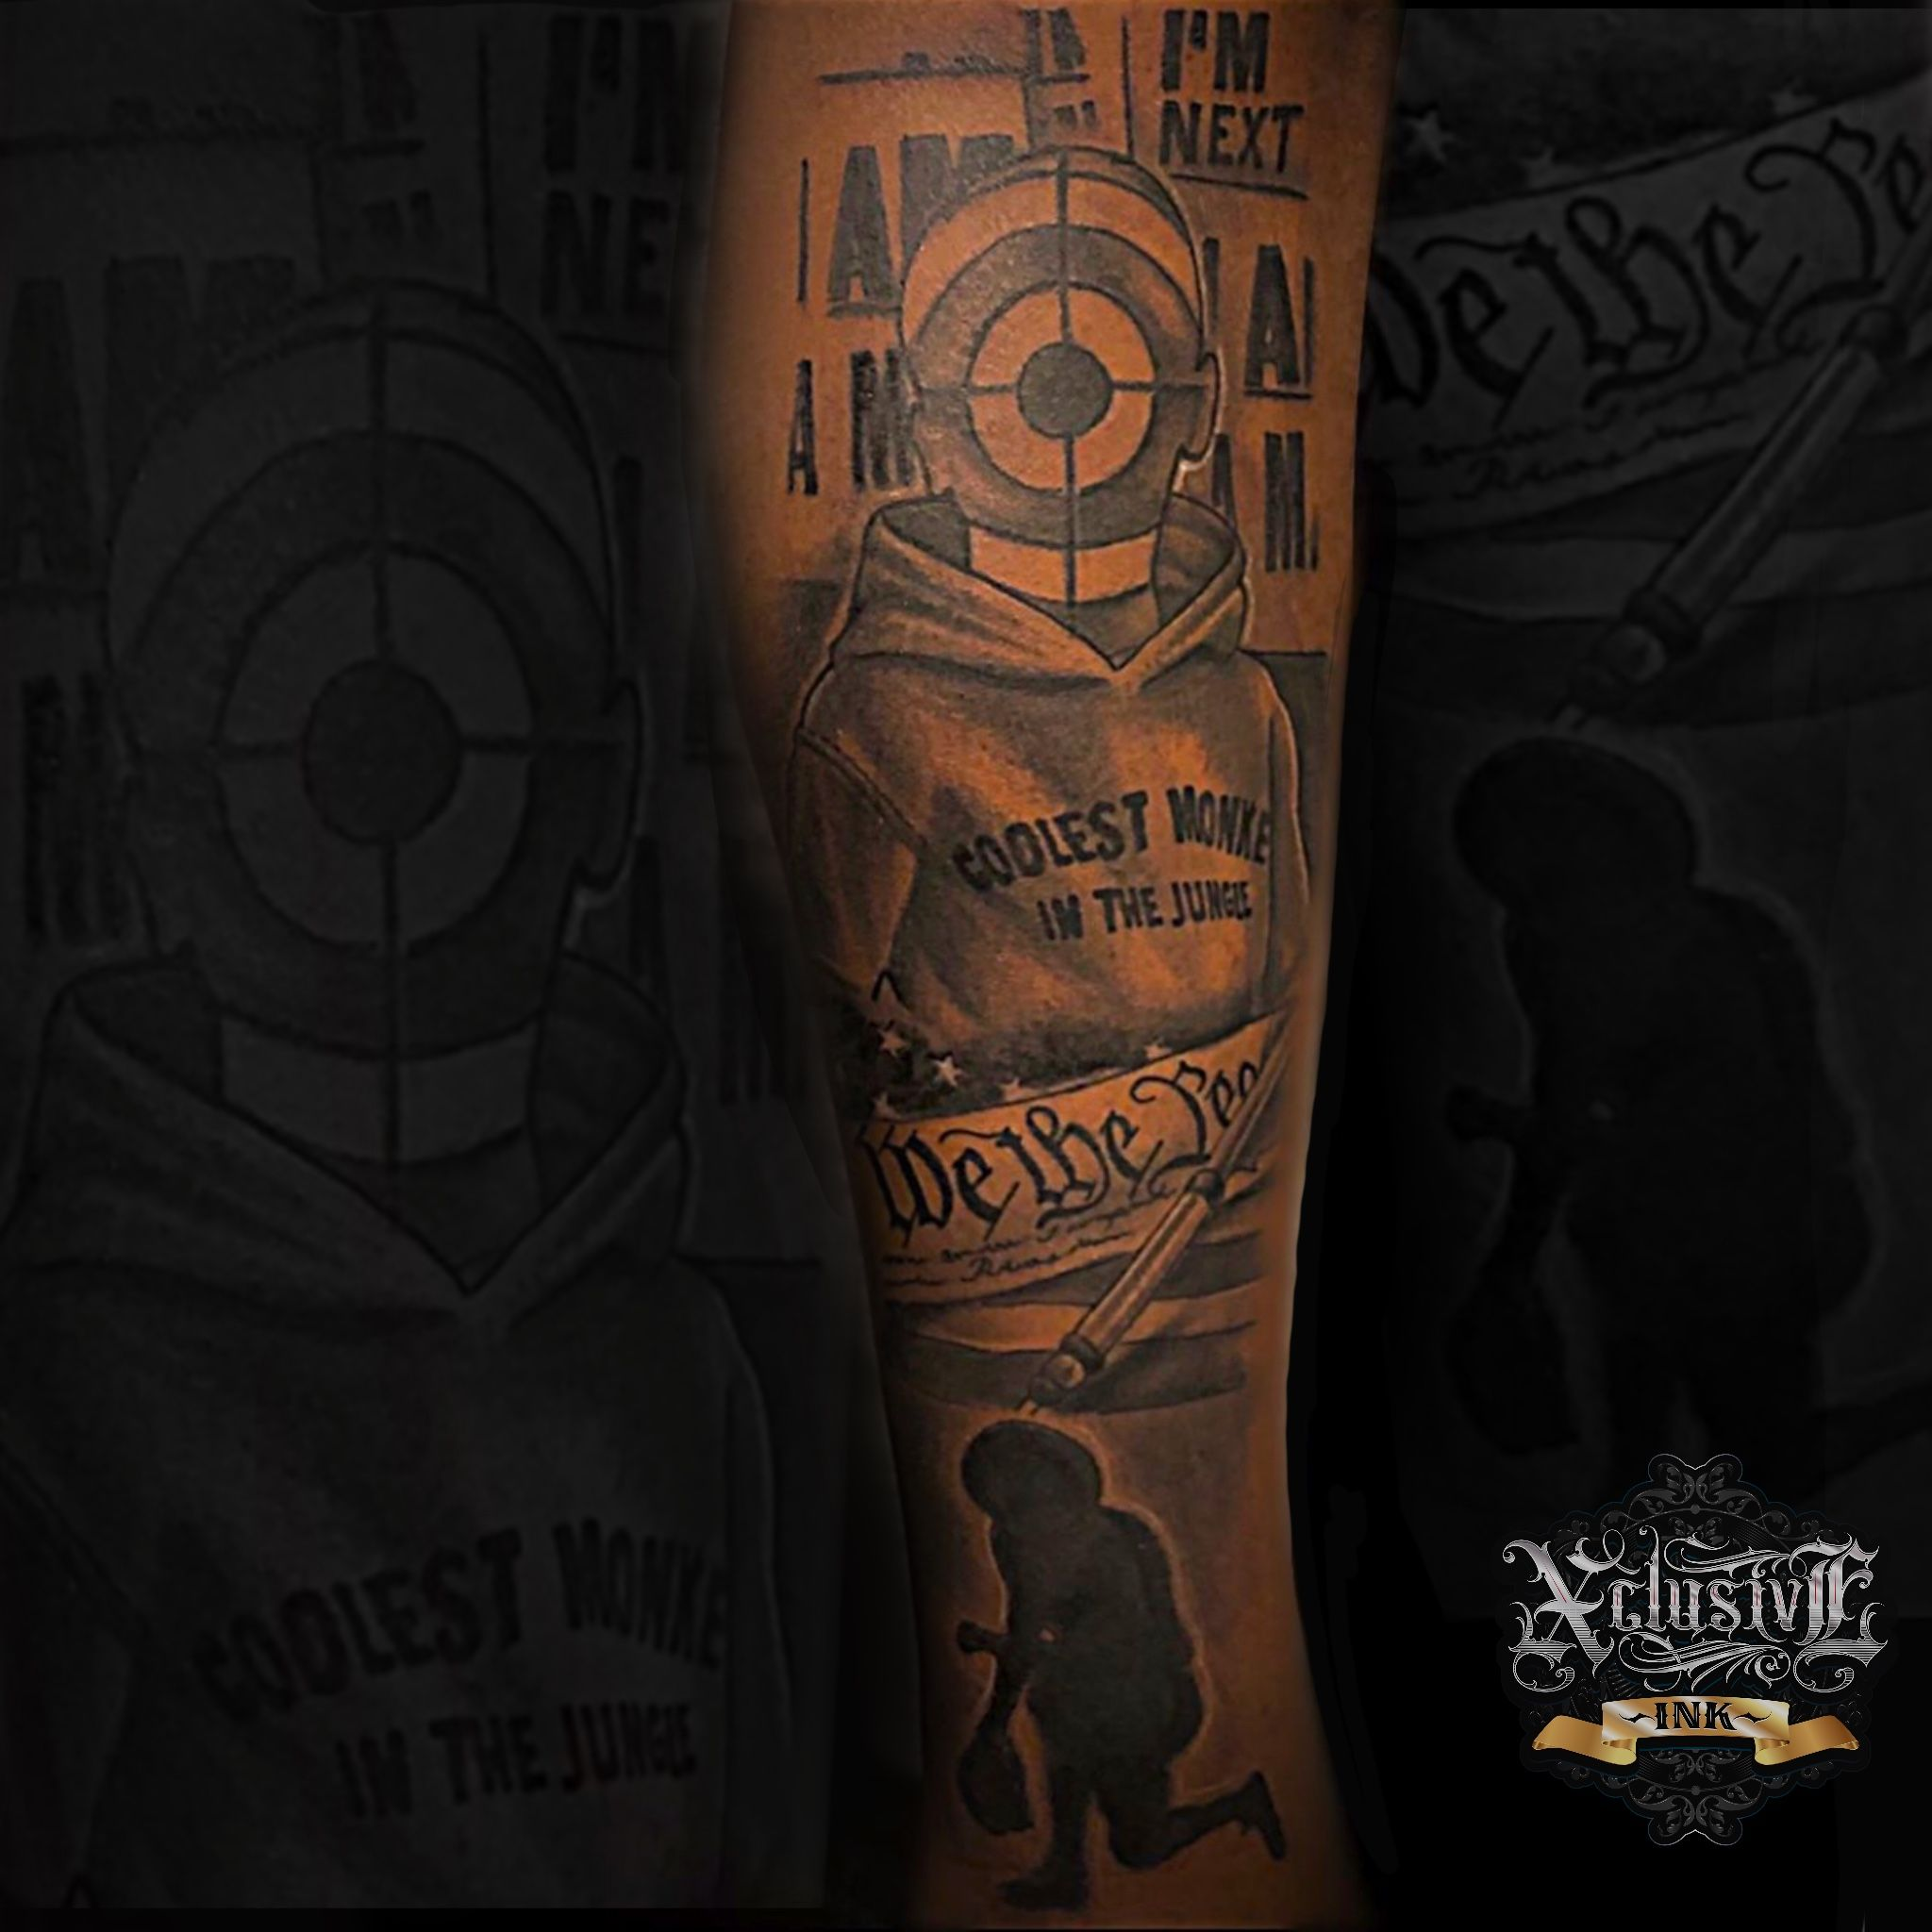 Injustice Tattoo Forearm Tattoo Men Tattoos For Guys Tattoos